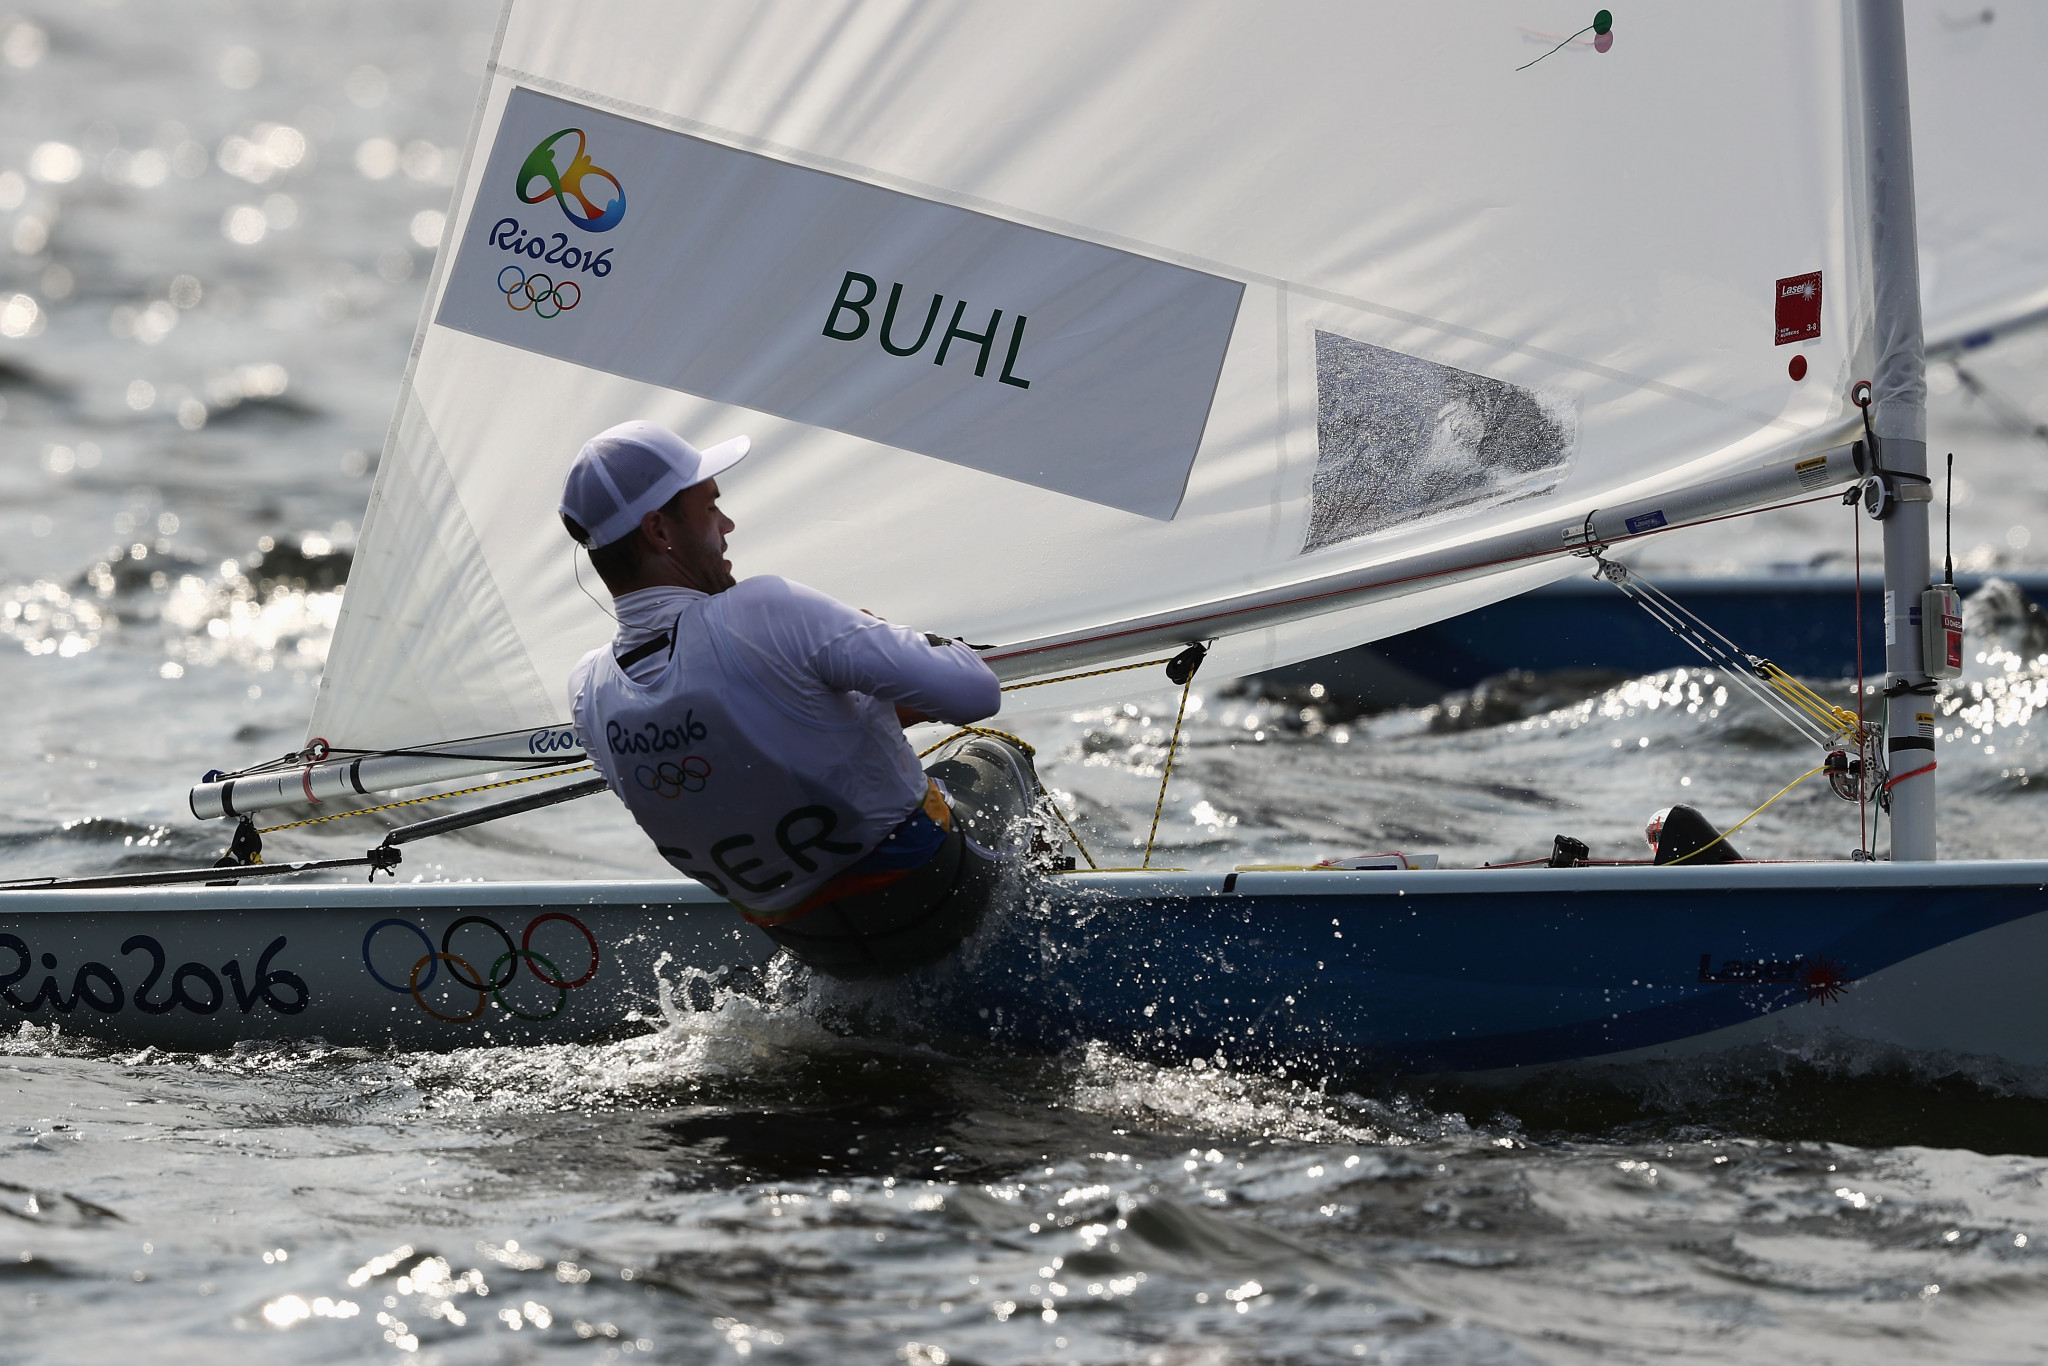 Philipp Buhl grabbed a share of the lead at the Laser Standard World Championships ©Getty Images